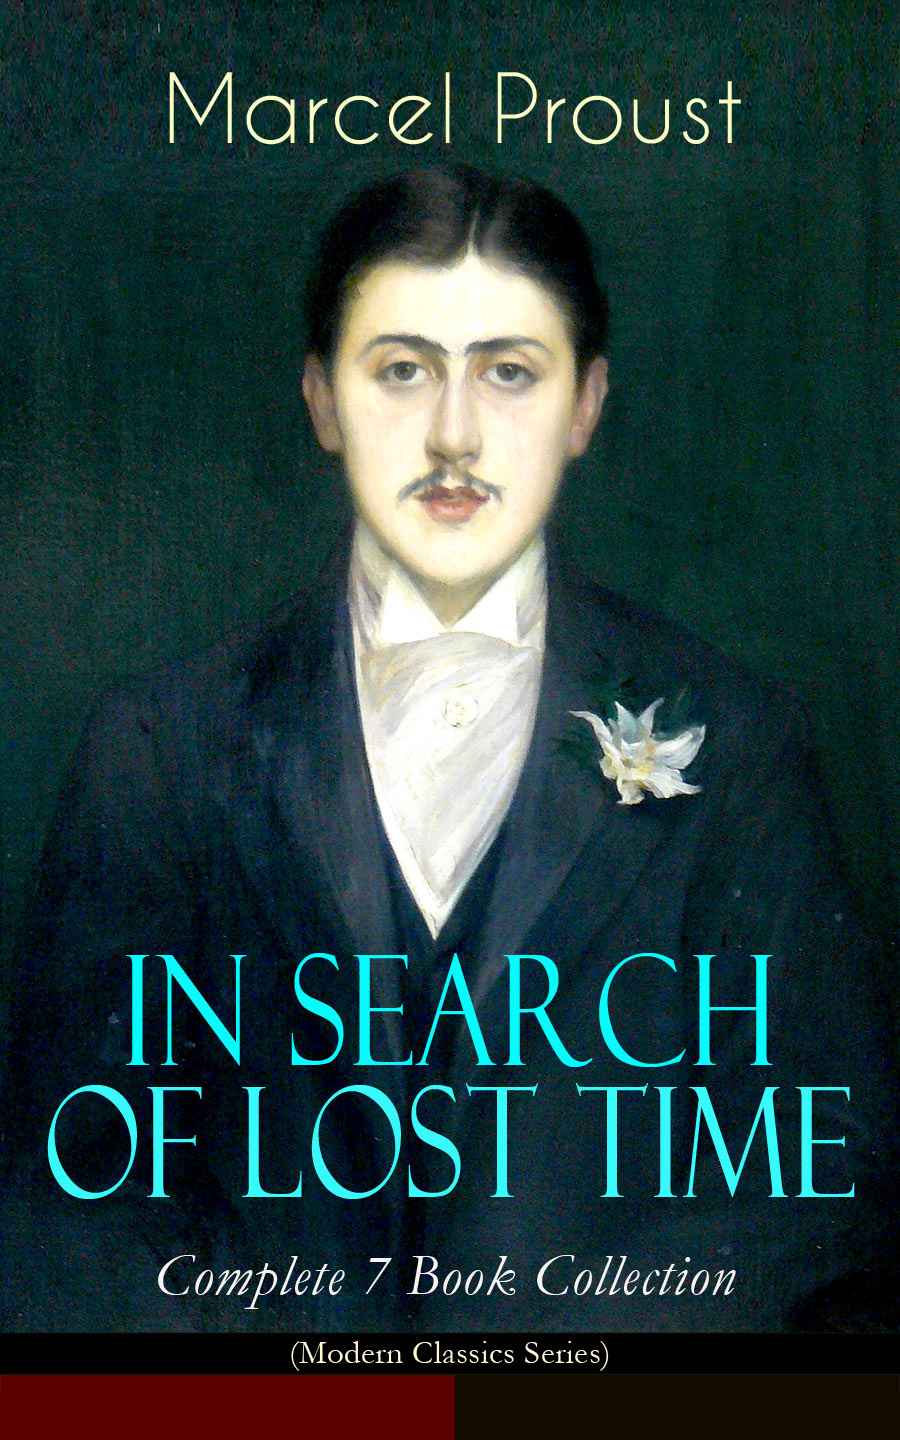 Marcel Proust IN SEARCH OF LOST TIME - Complete 7 Book Collection (Modern Classics Series)